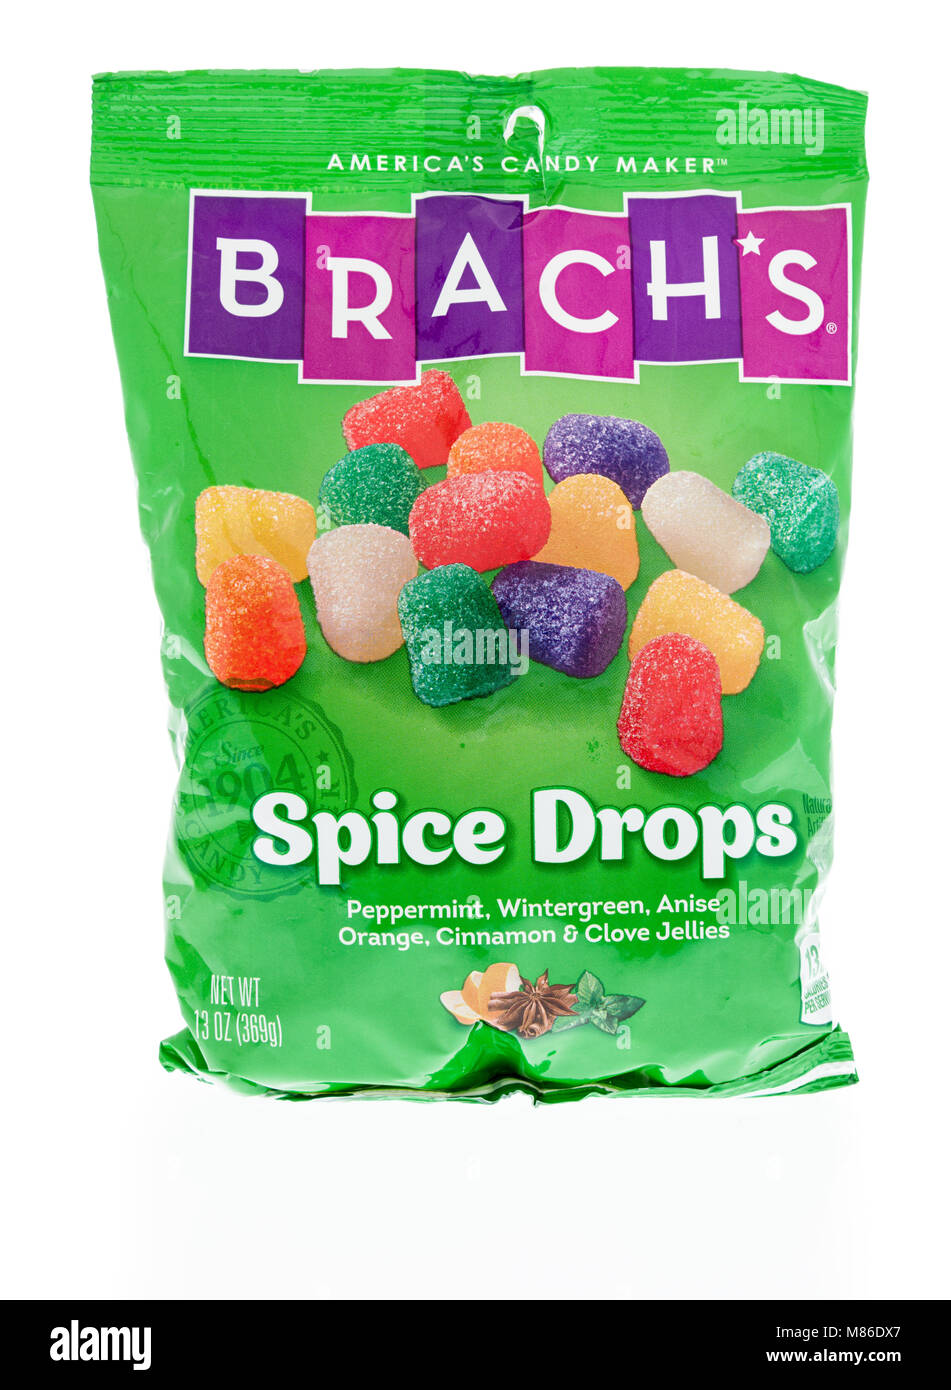 Winneconne, WI - 27 February 2018:   A bag of Brach's Spice drops candy on an isolated background. - Stock Image